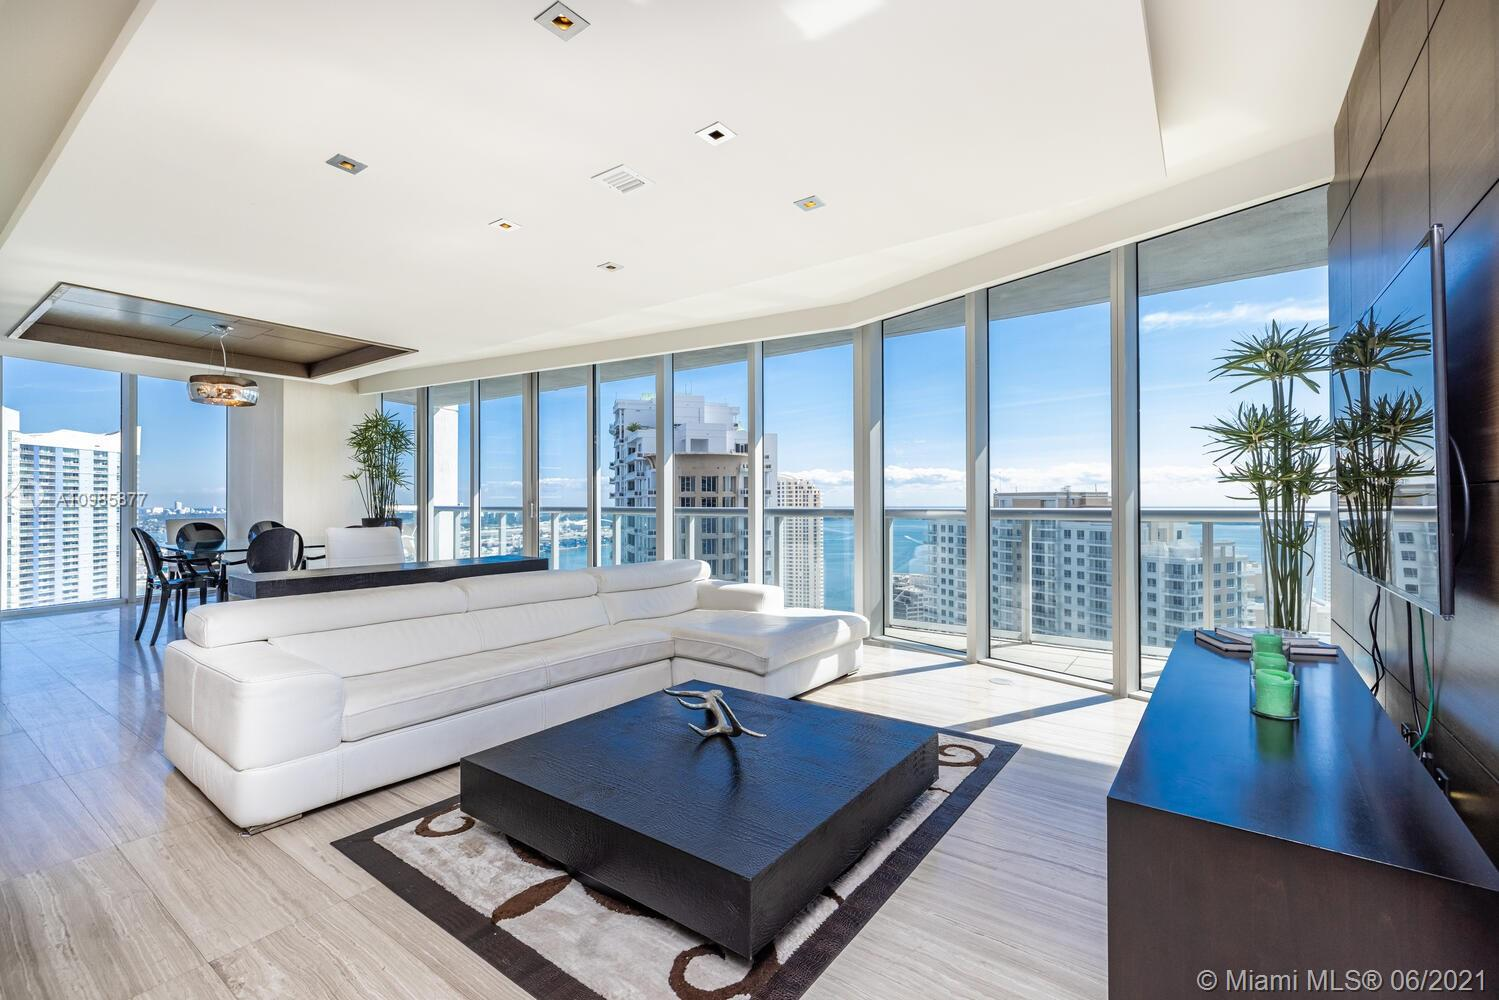 The largest high floor Residence with the best price @ ICON BRICKELL, Tower I. This residence features 3 bedrooms, 2.5 bathrooms, 2,294 Sq Ft Total area / 2,044 Sq Ft of Living Area, as per developer floor plan, Assigned Parking Space included, Stainless Steal appliances, marble and wood floors, exquisite views of the Ocean, Biscayne Bay and Downtown Miami. Come take a look at one of the most luxurious condos in all of Icon Brickell. Price is firm. Showing from Monday to Friday 10am to 5pm only with 24-48 hr prior notice.